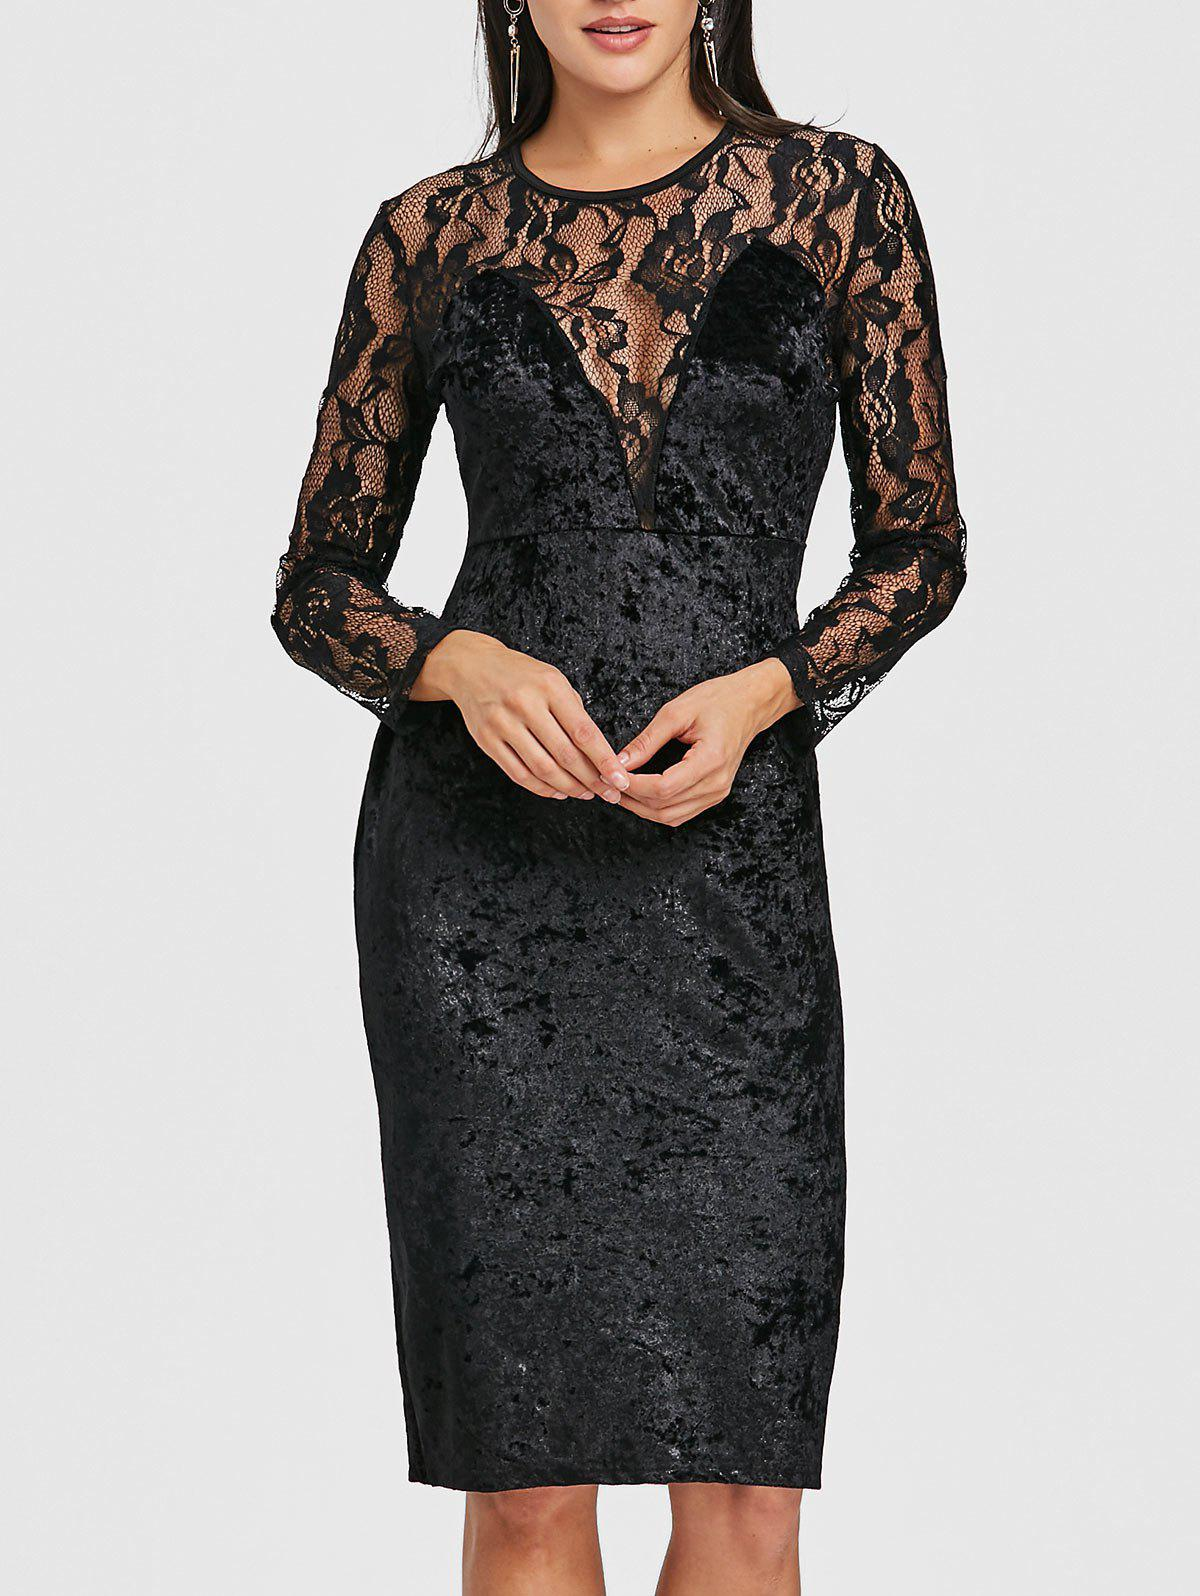 Lace Panel Velvet Pencil Dress - BLACK XL